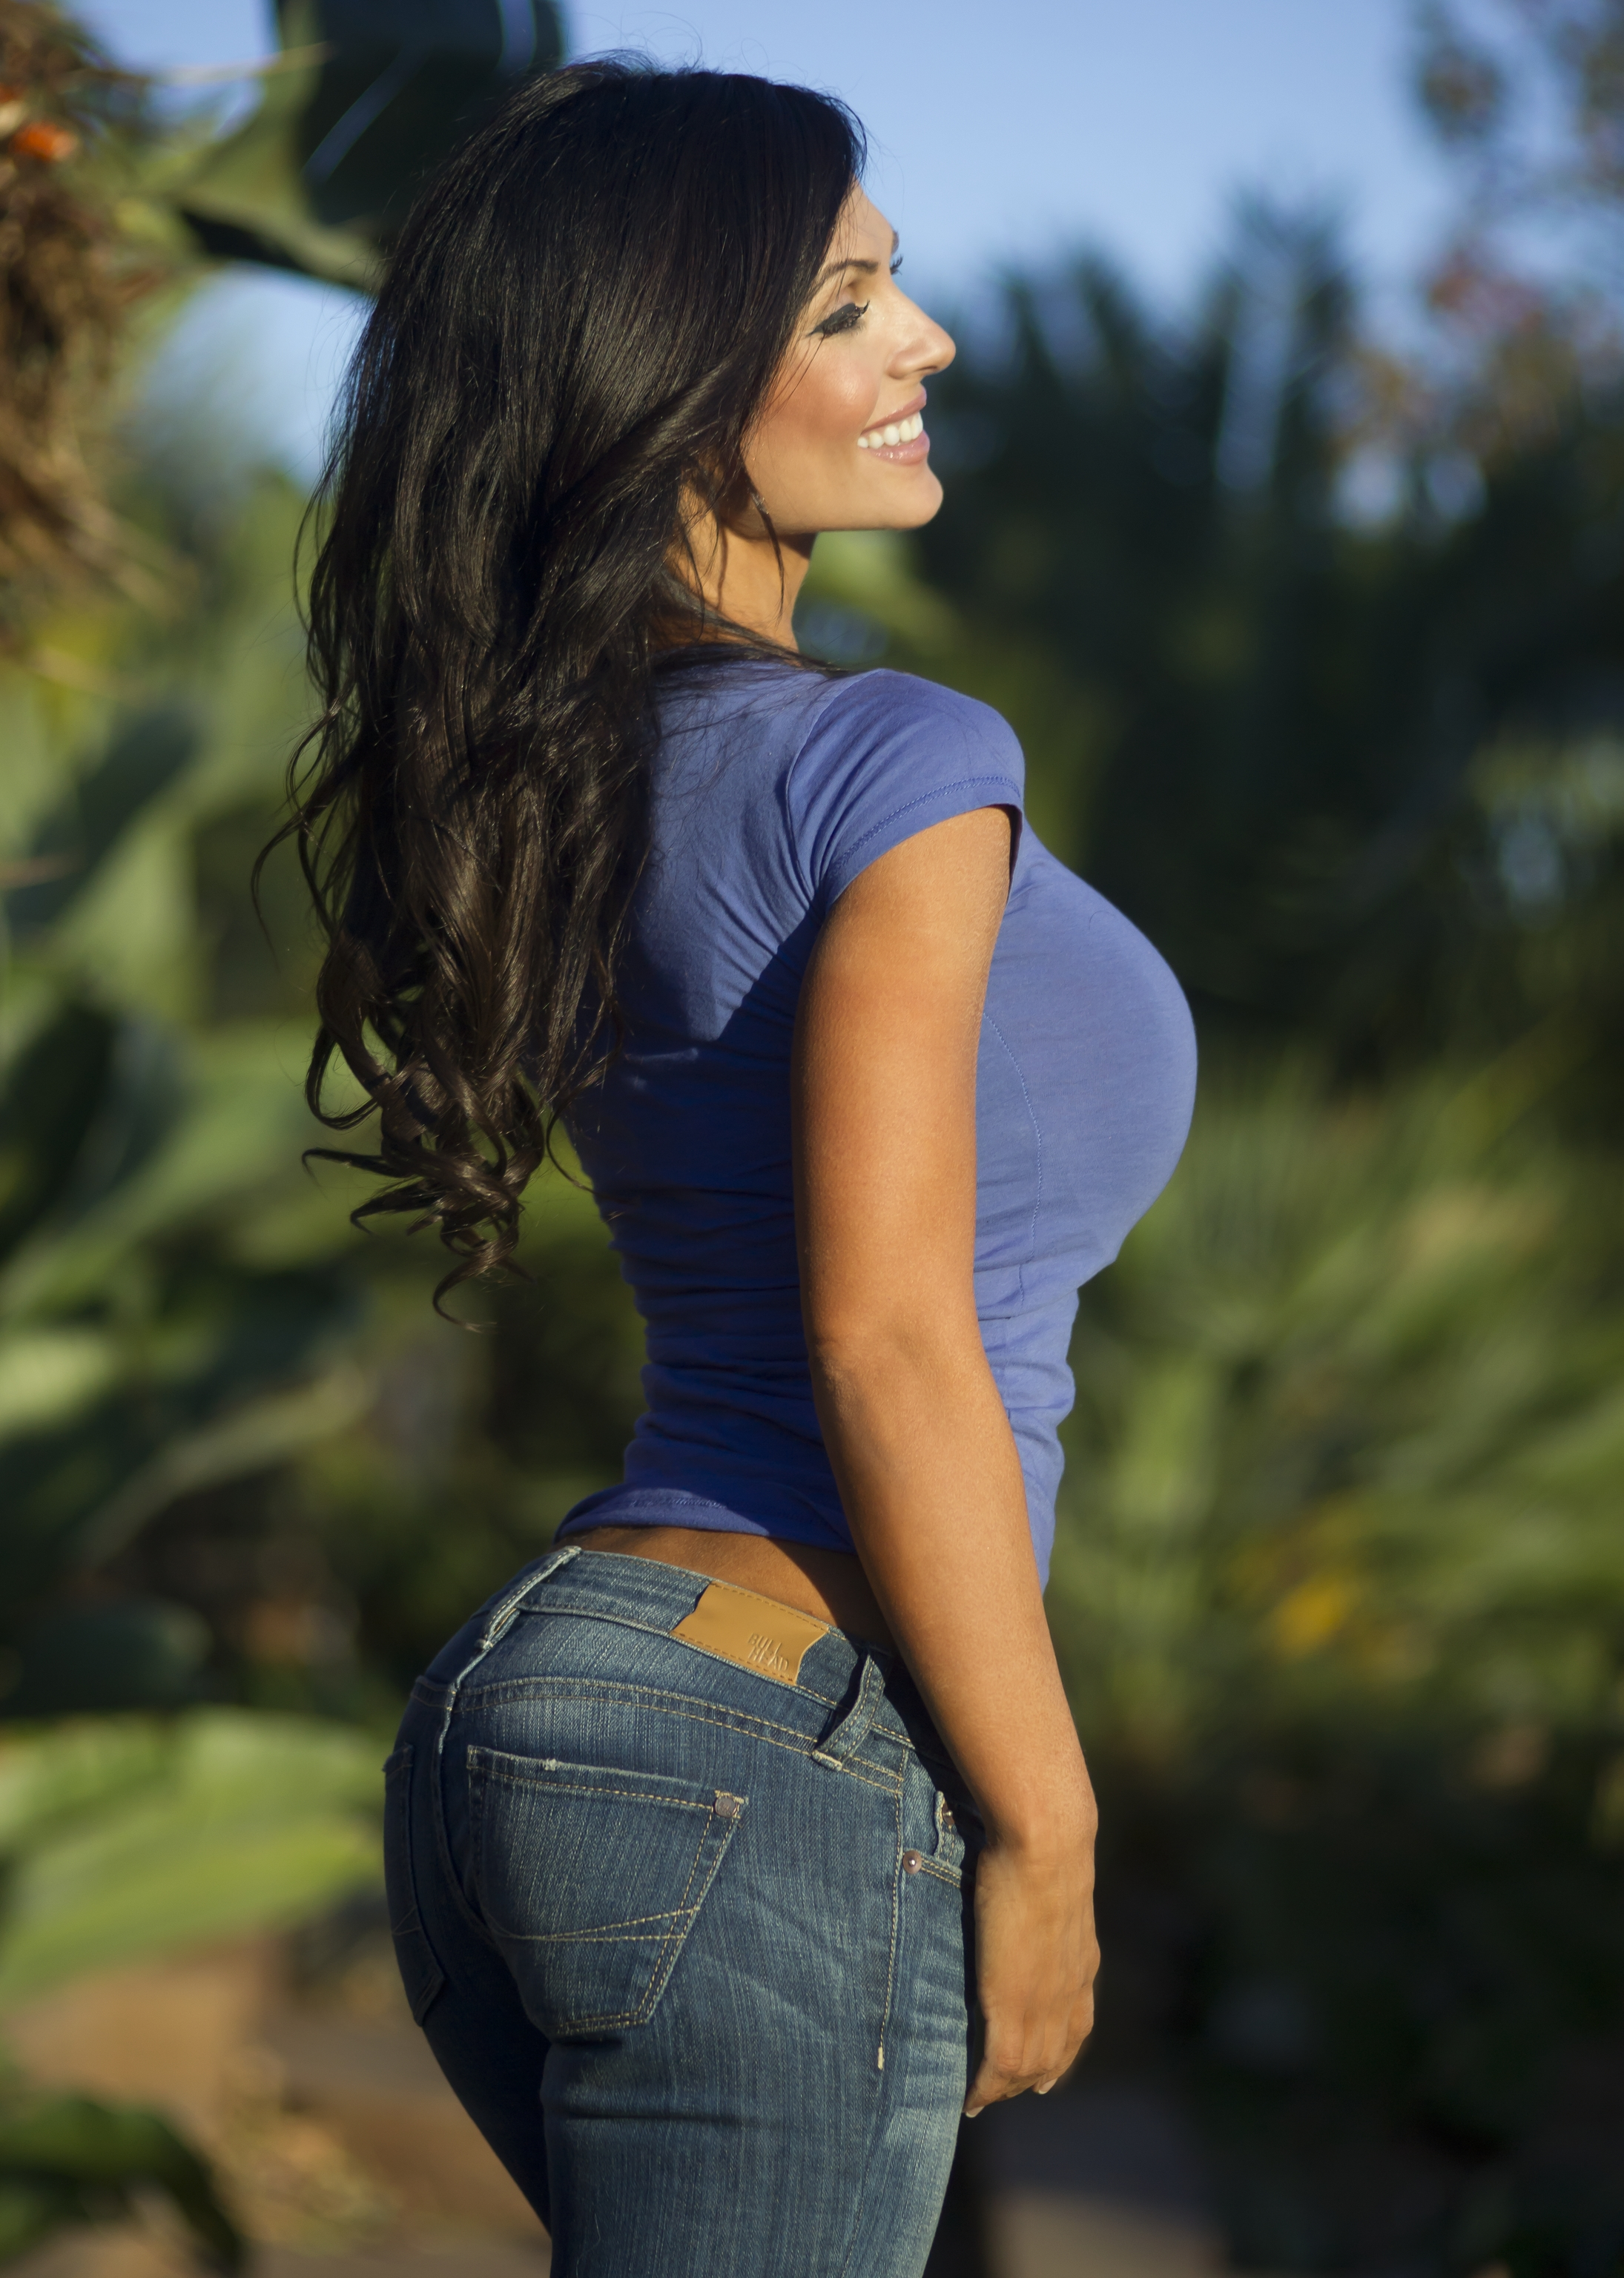 Denise milani blue t shirt eyval net